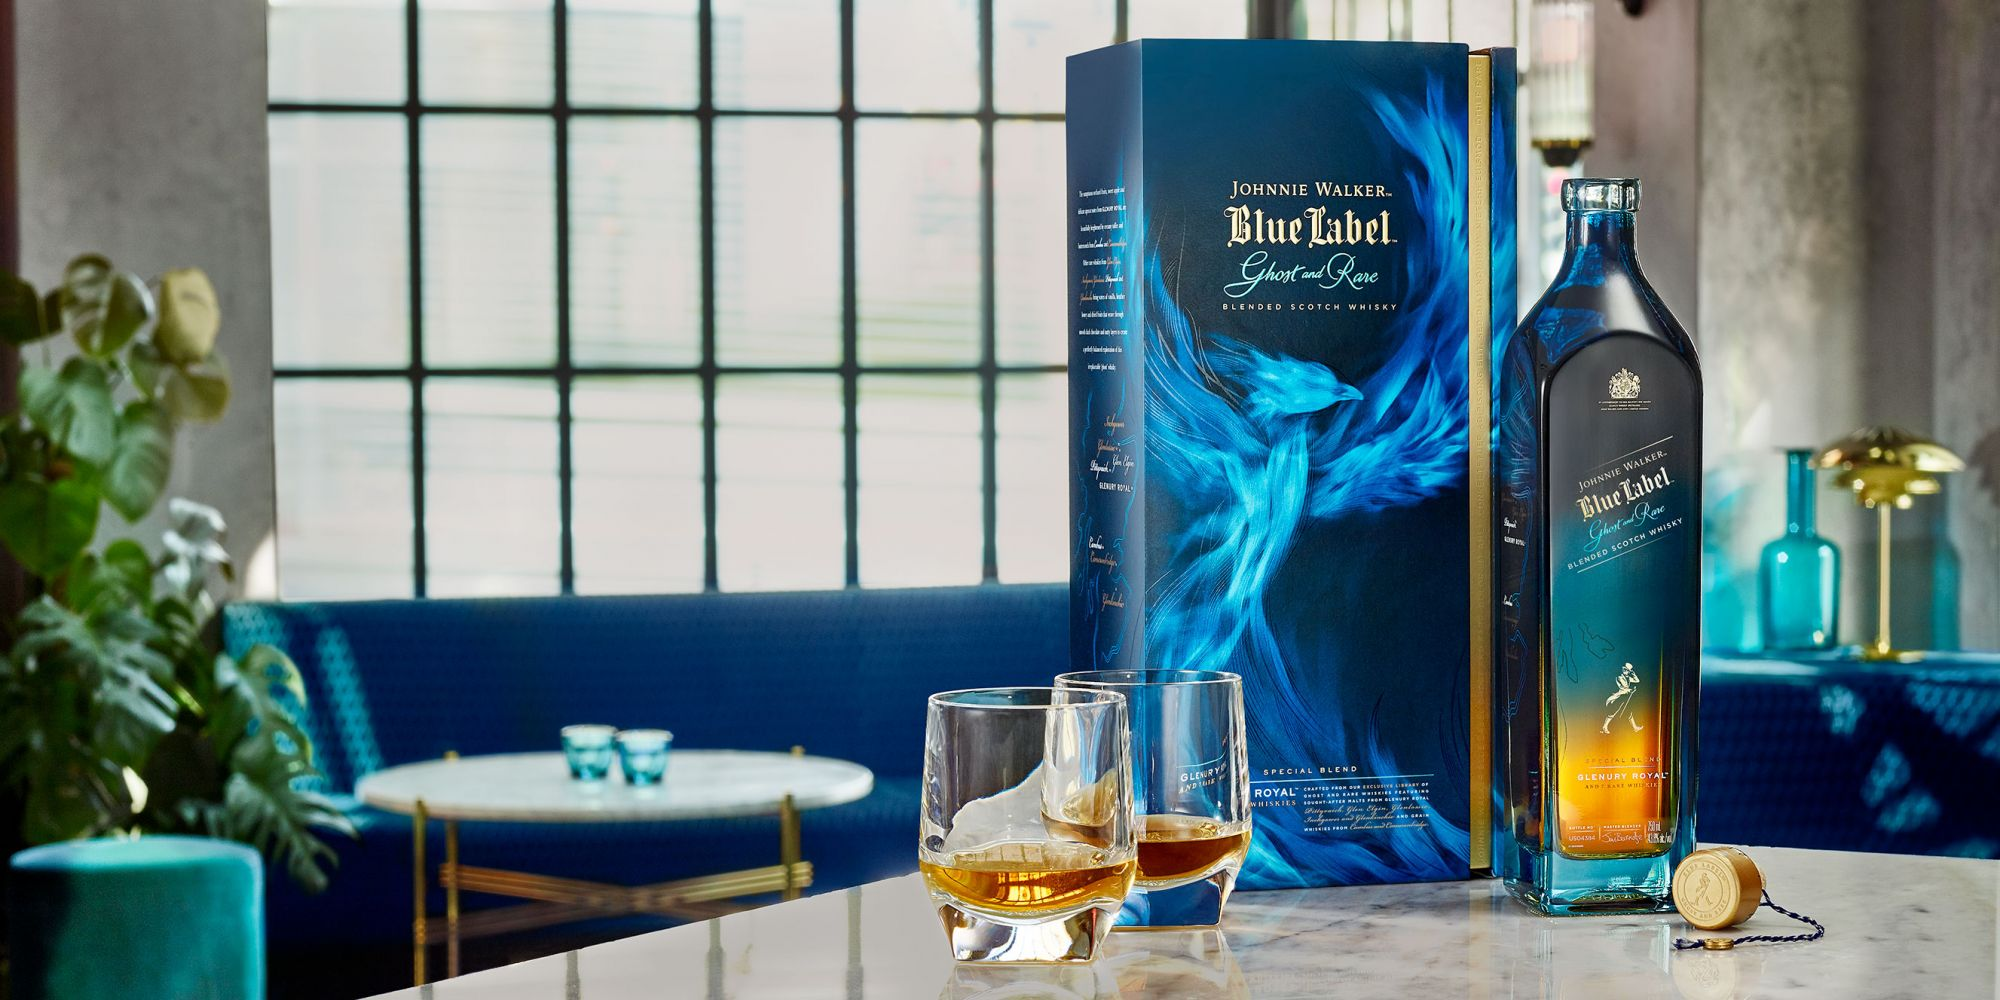 Savour Exquisite Whiskies Like The Johnnie Walker Blue Label Ghost And Rare Glenury Royal This Holiday Season